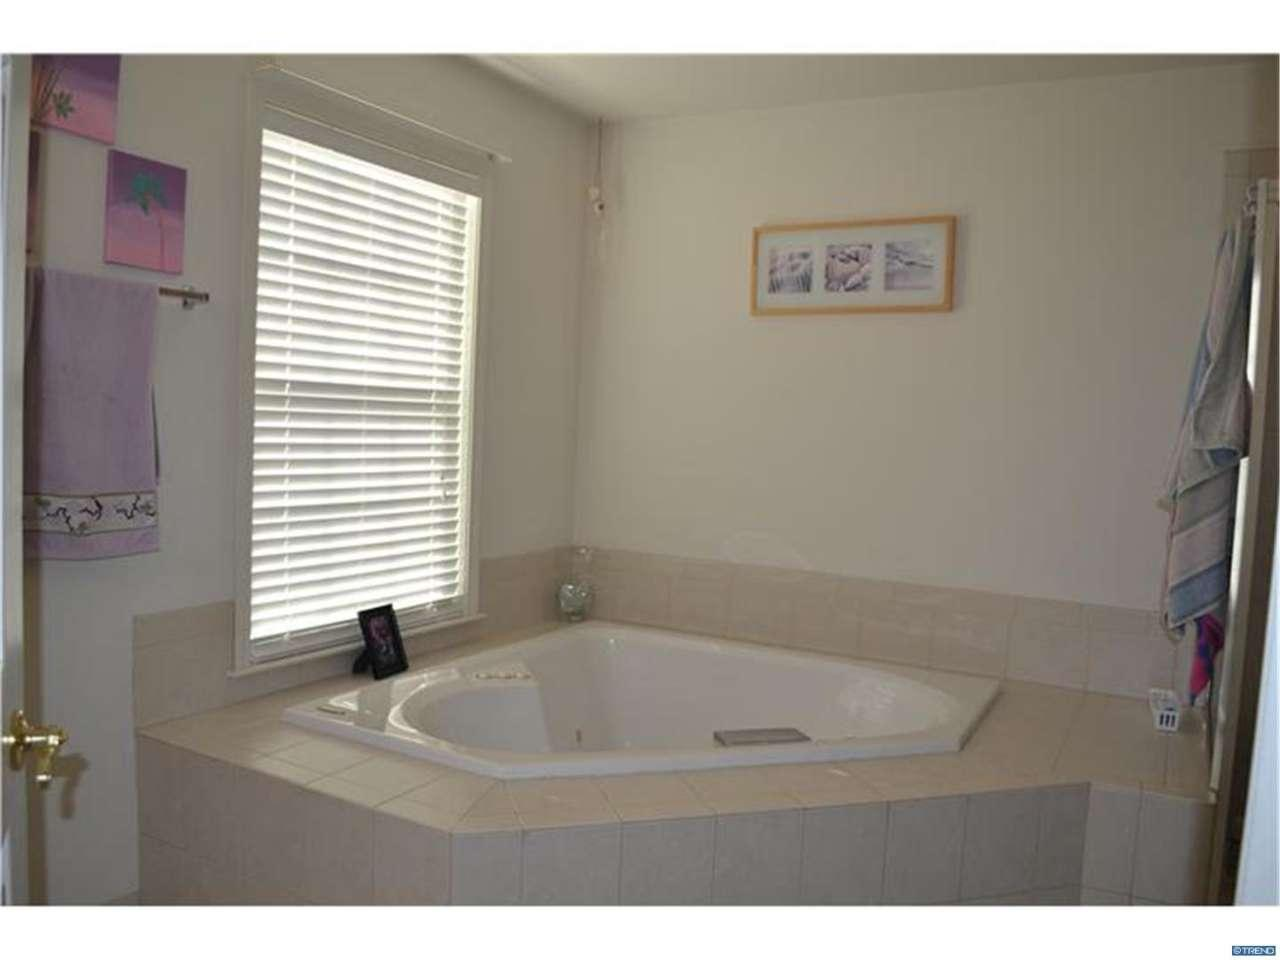 Beautiful Bathrooms Letchworth 9 letchworth ln, avondale, pa 19311 mls# 6904124 - movoto